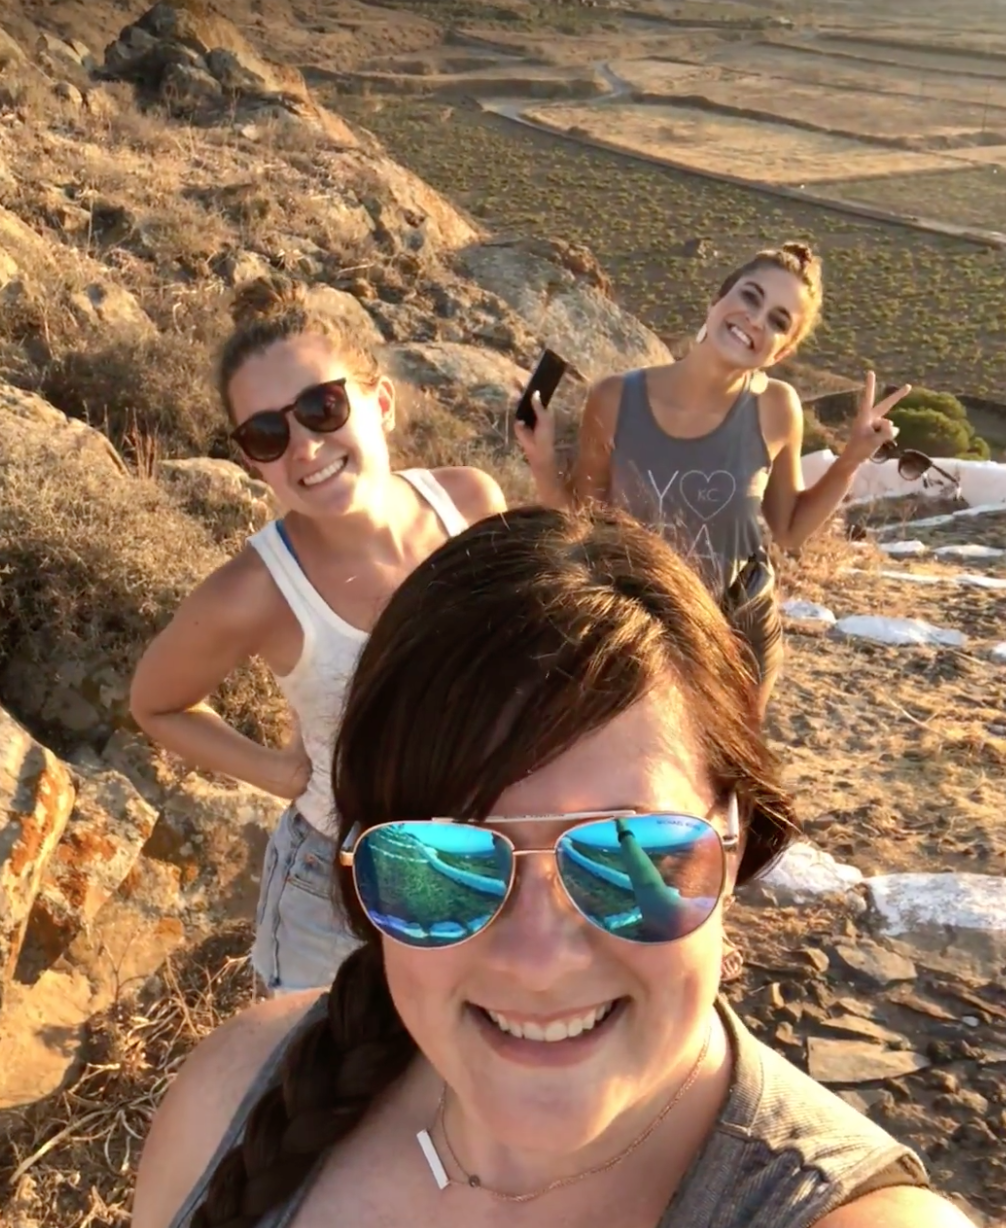 Some of our group on a hike